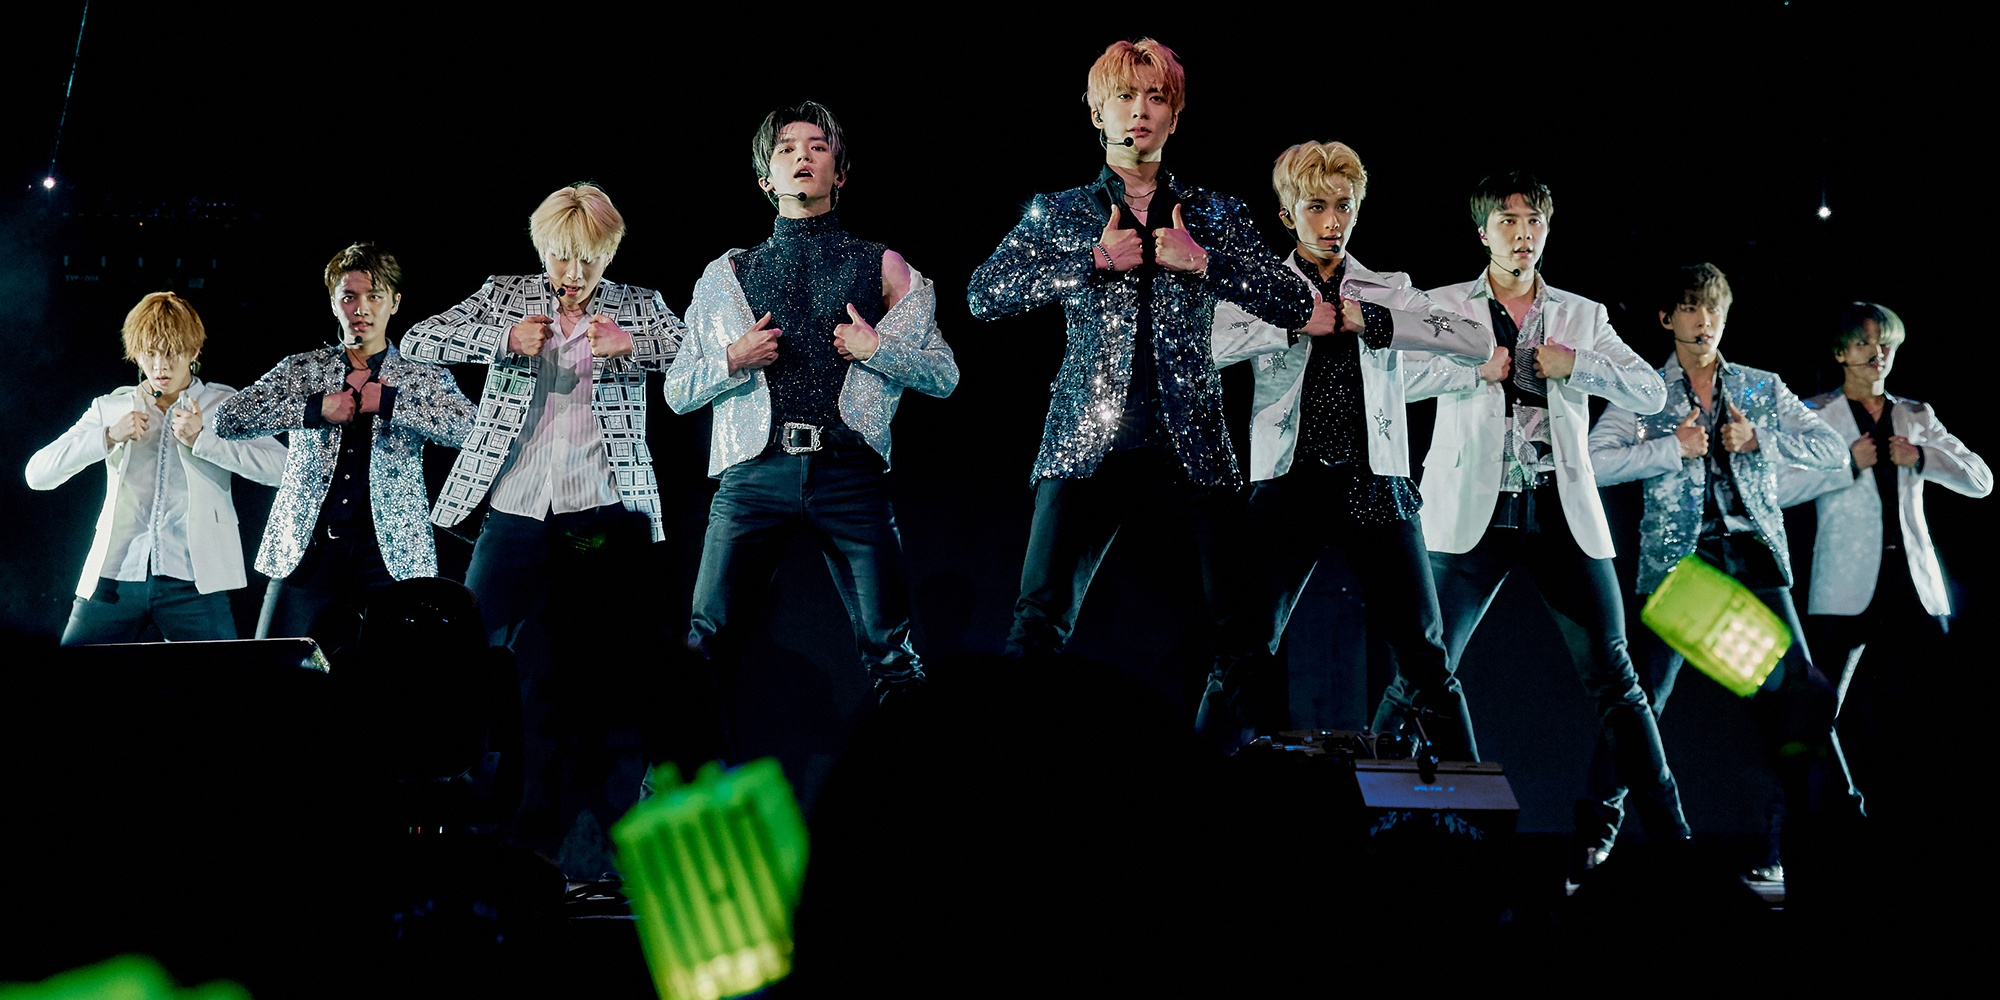 NCT 127 to perform in Singapore this July